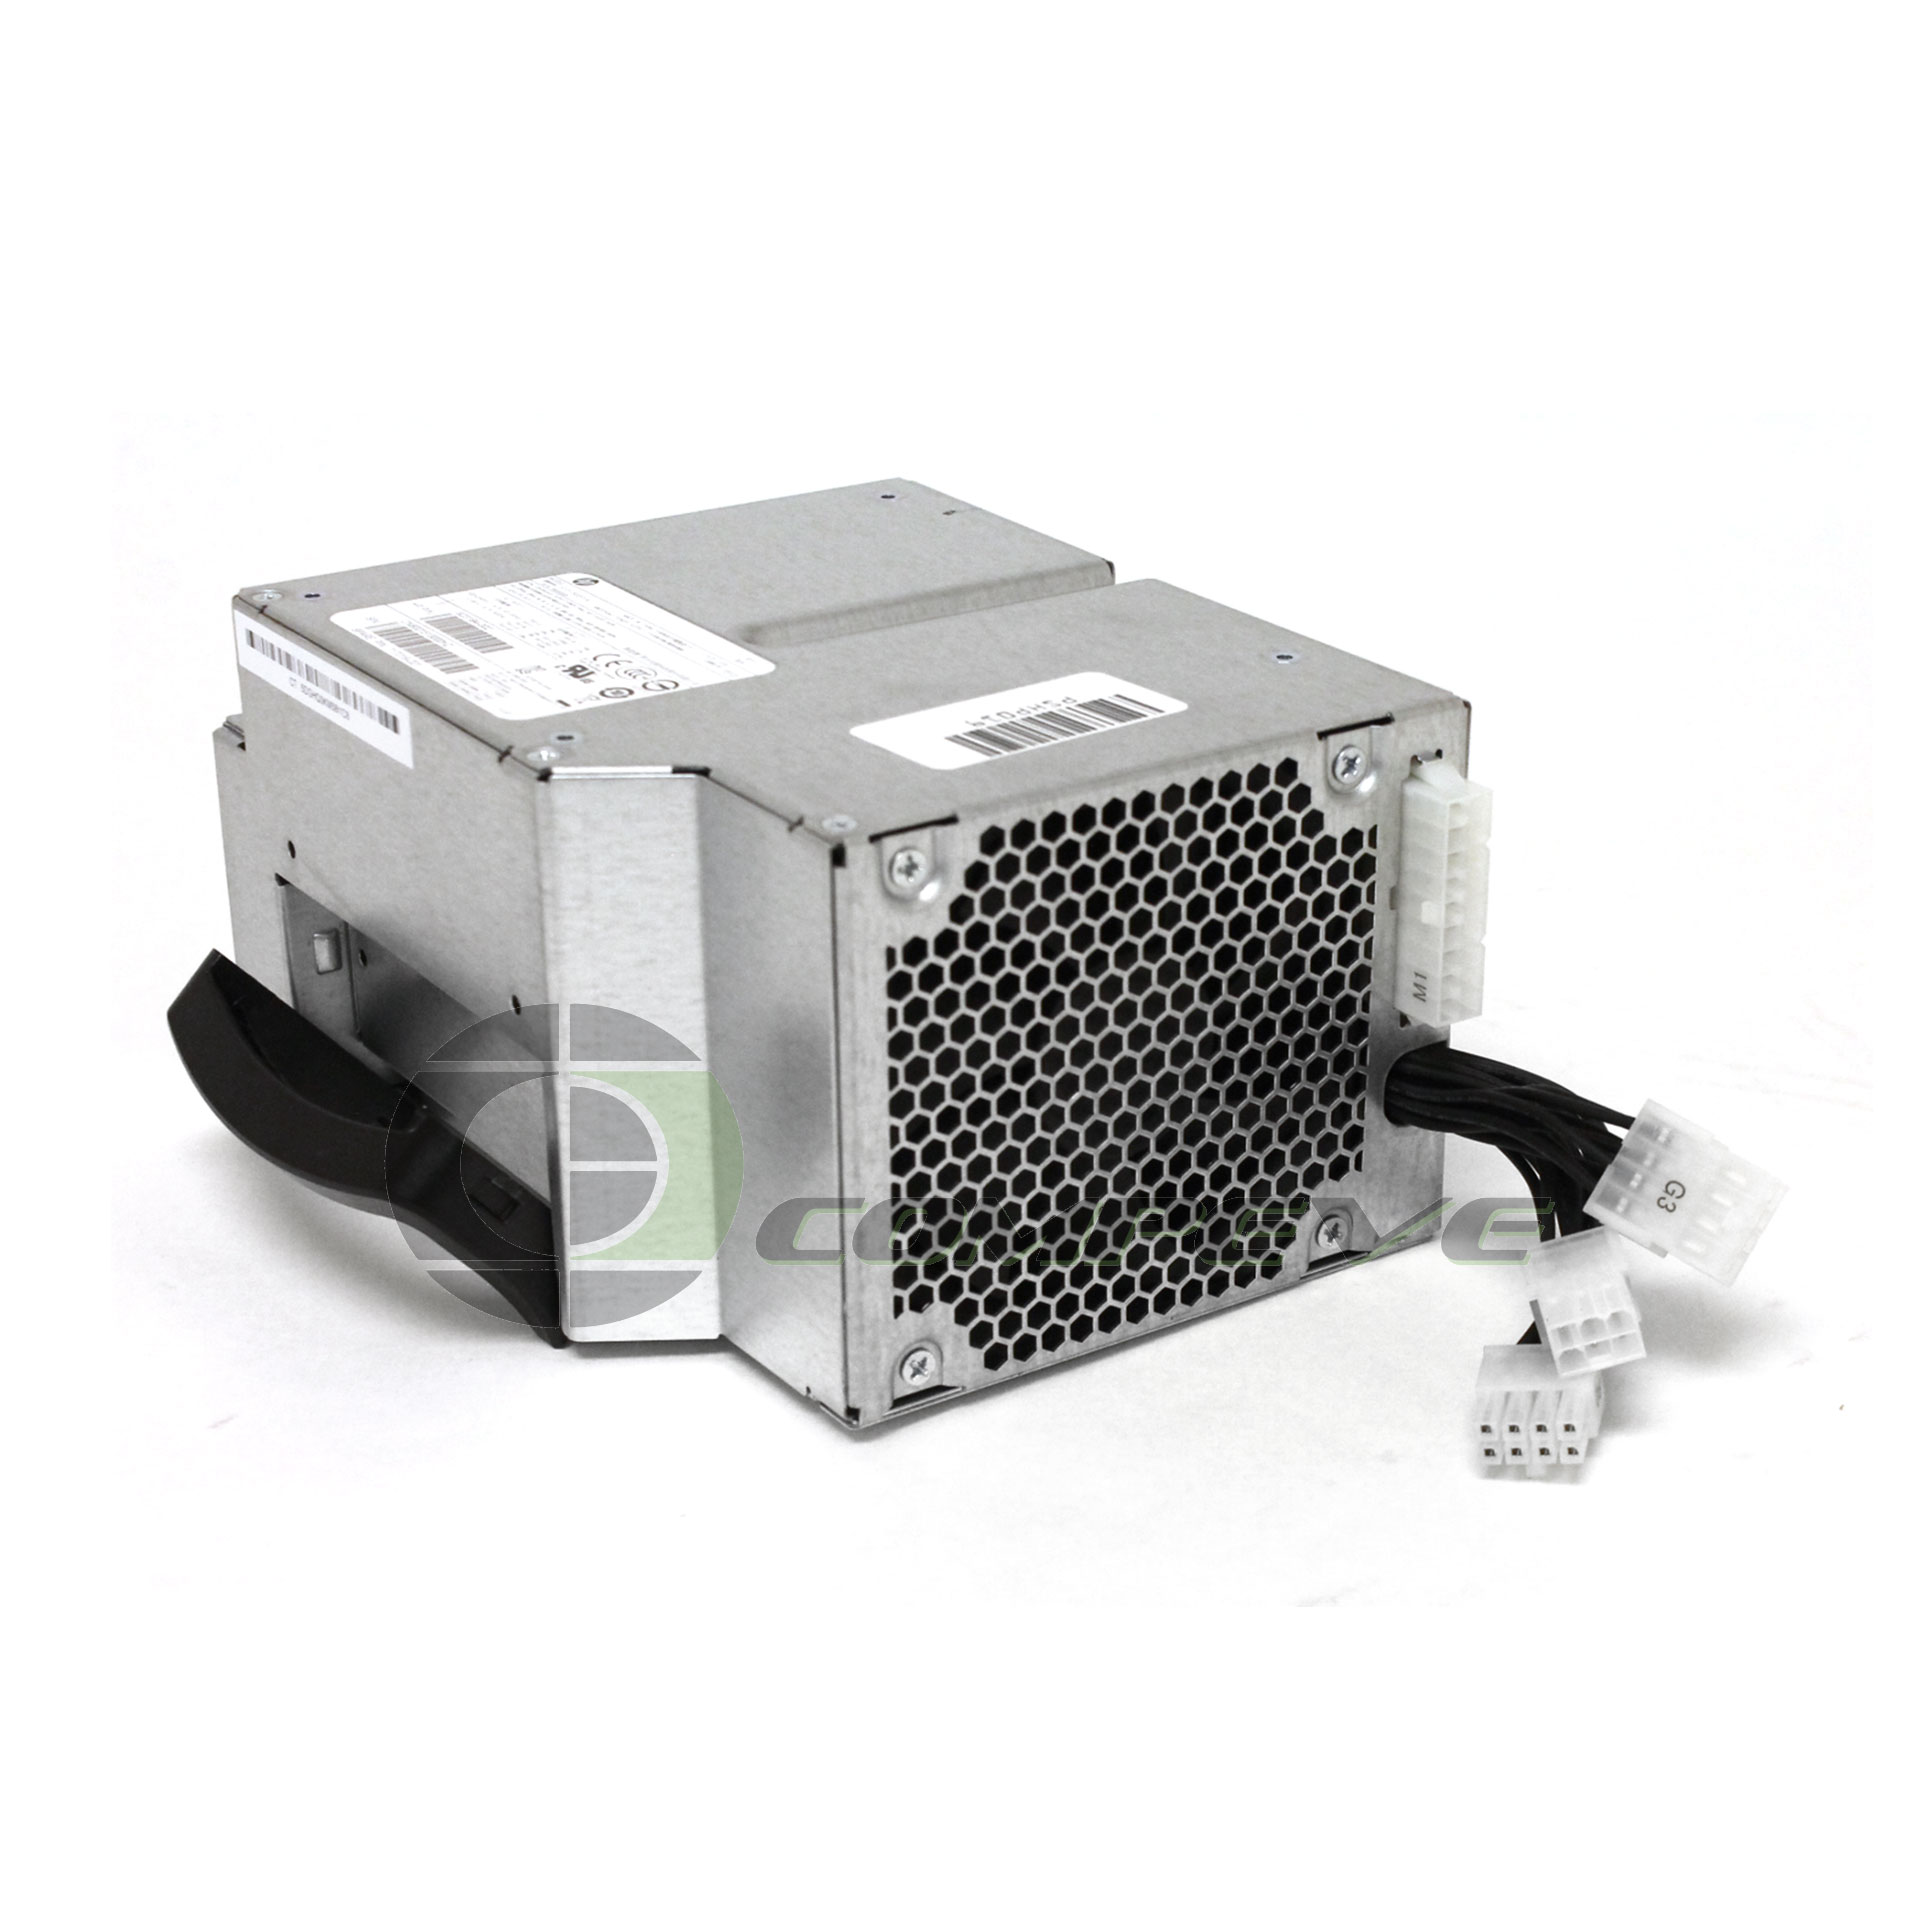 Hp Z620 Computer 800w Power Supply S10 800p1a 623194 002